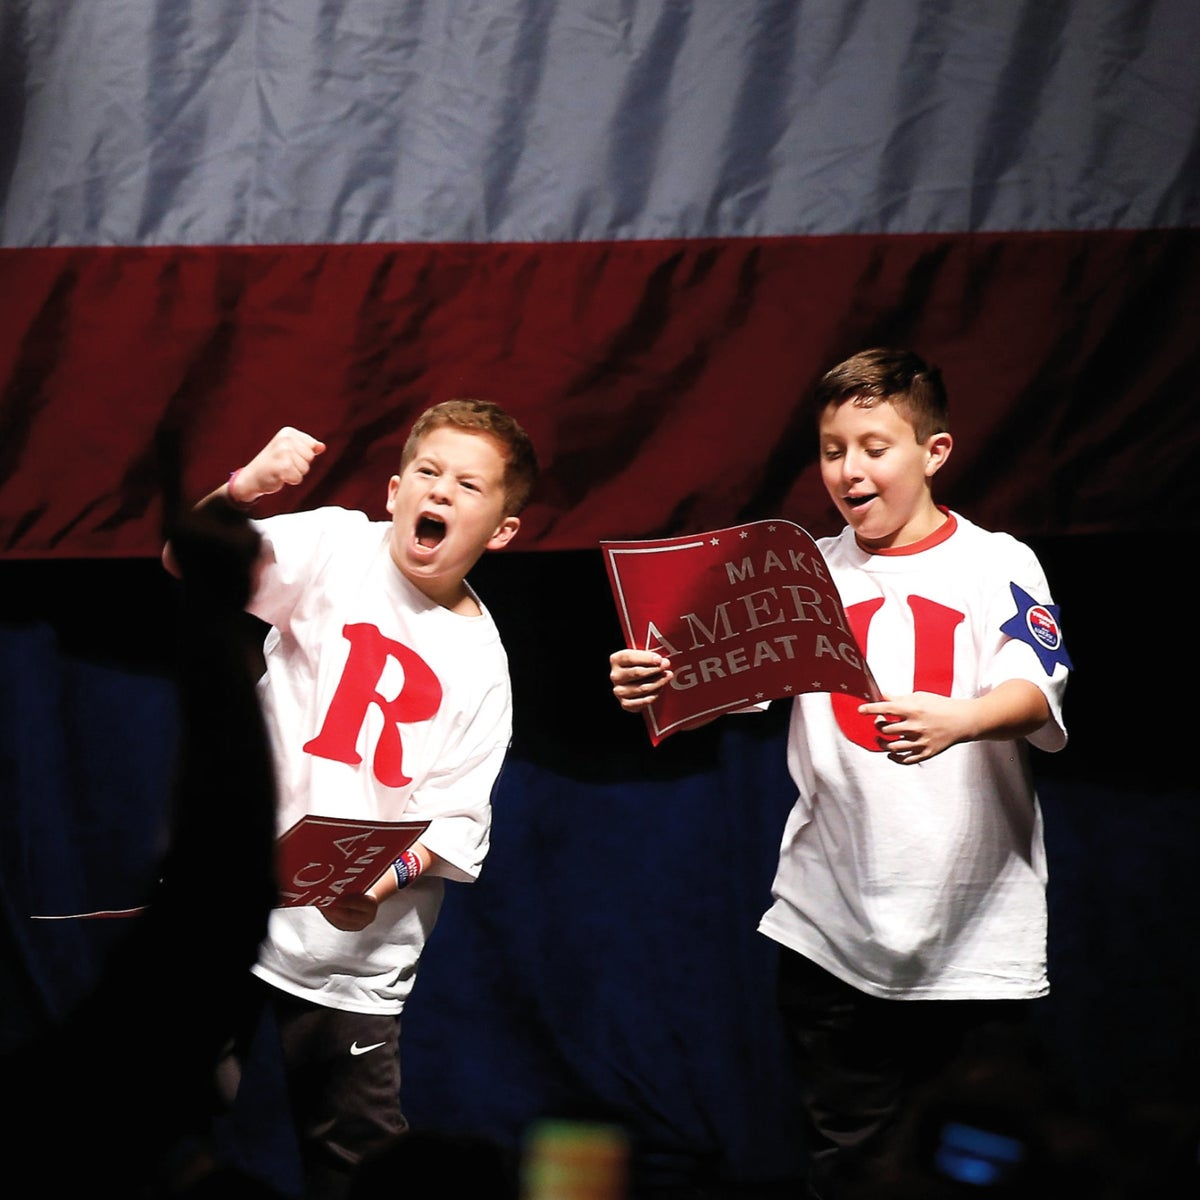 Children react to being called on stage by Donald Trump during a campaign rally in Detroit, Michigan, November 6, 2016.